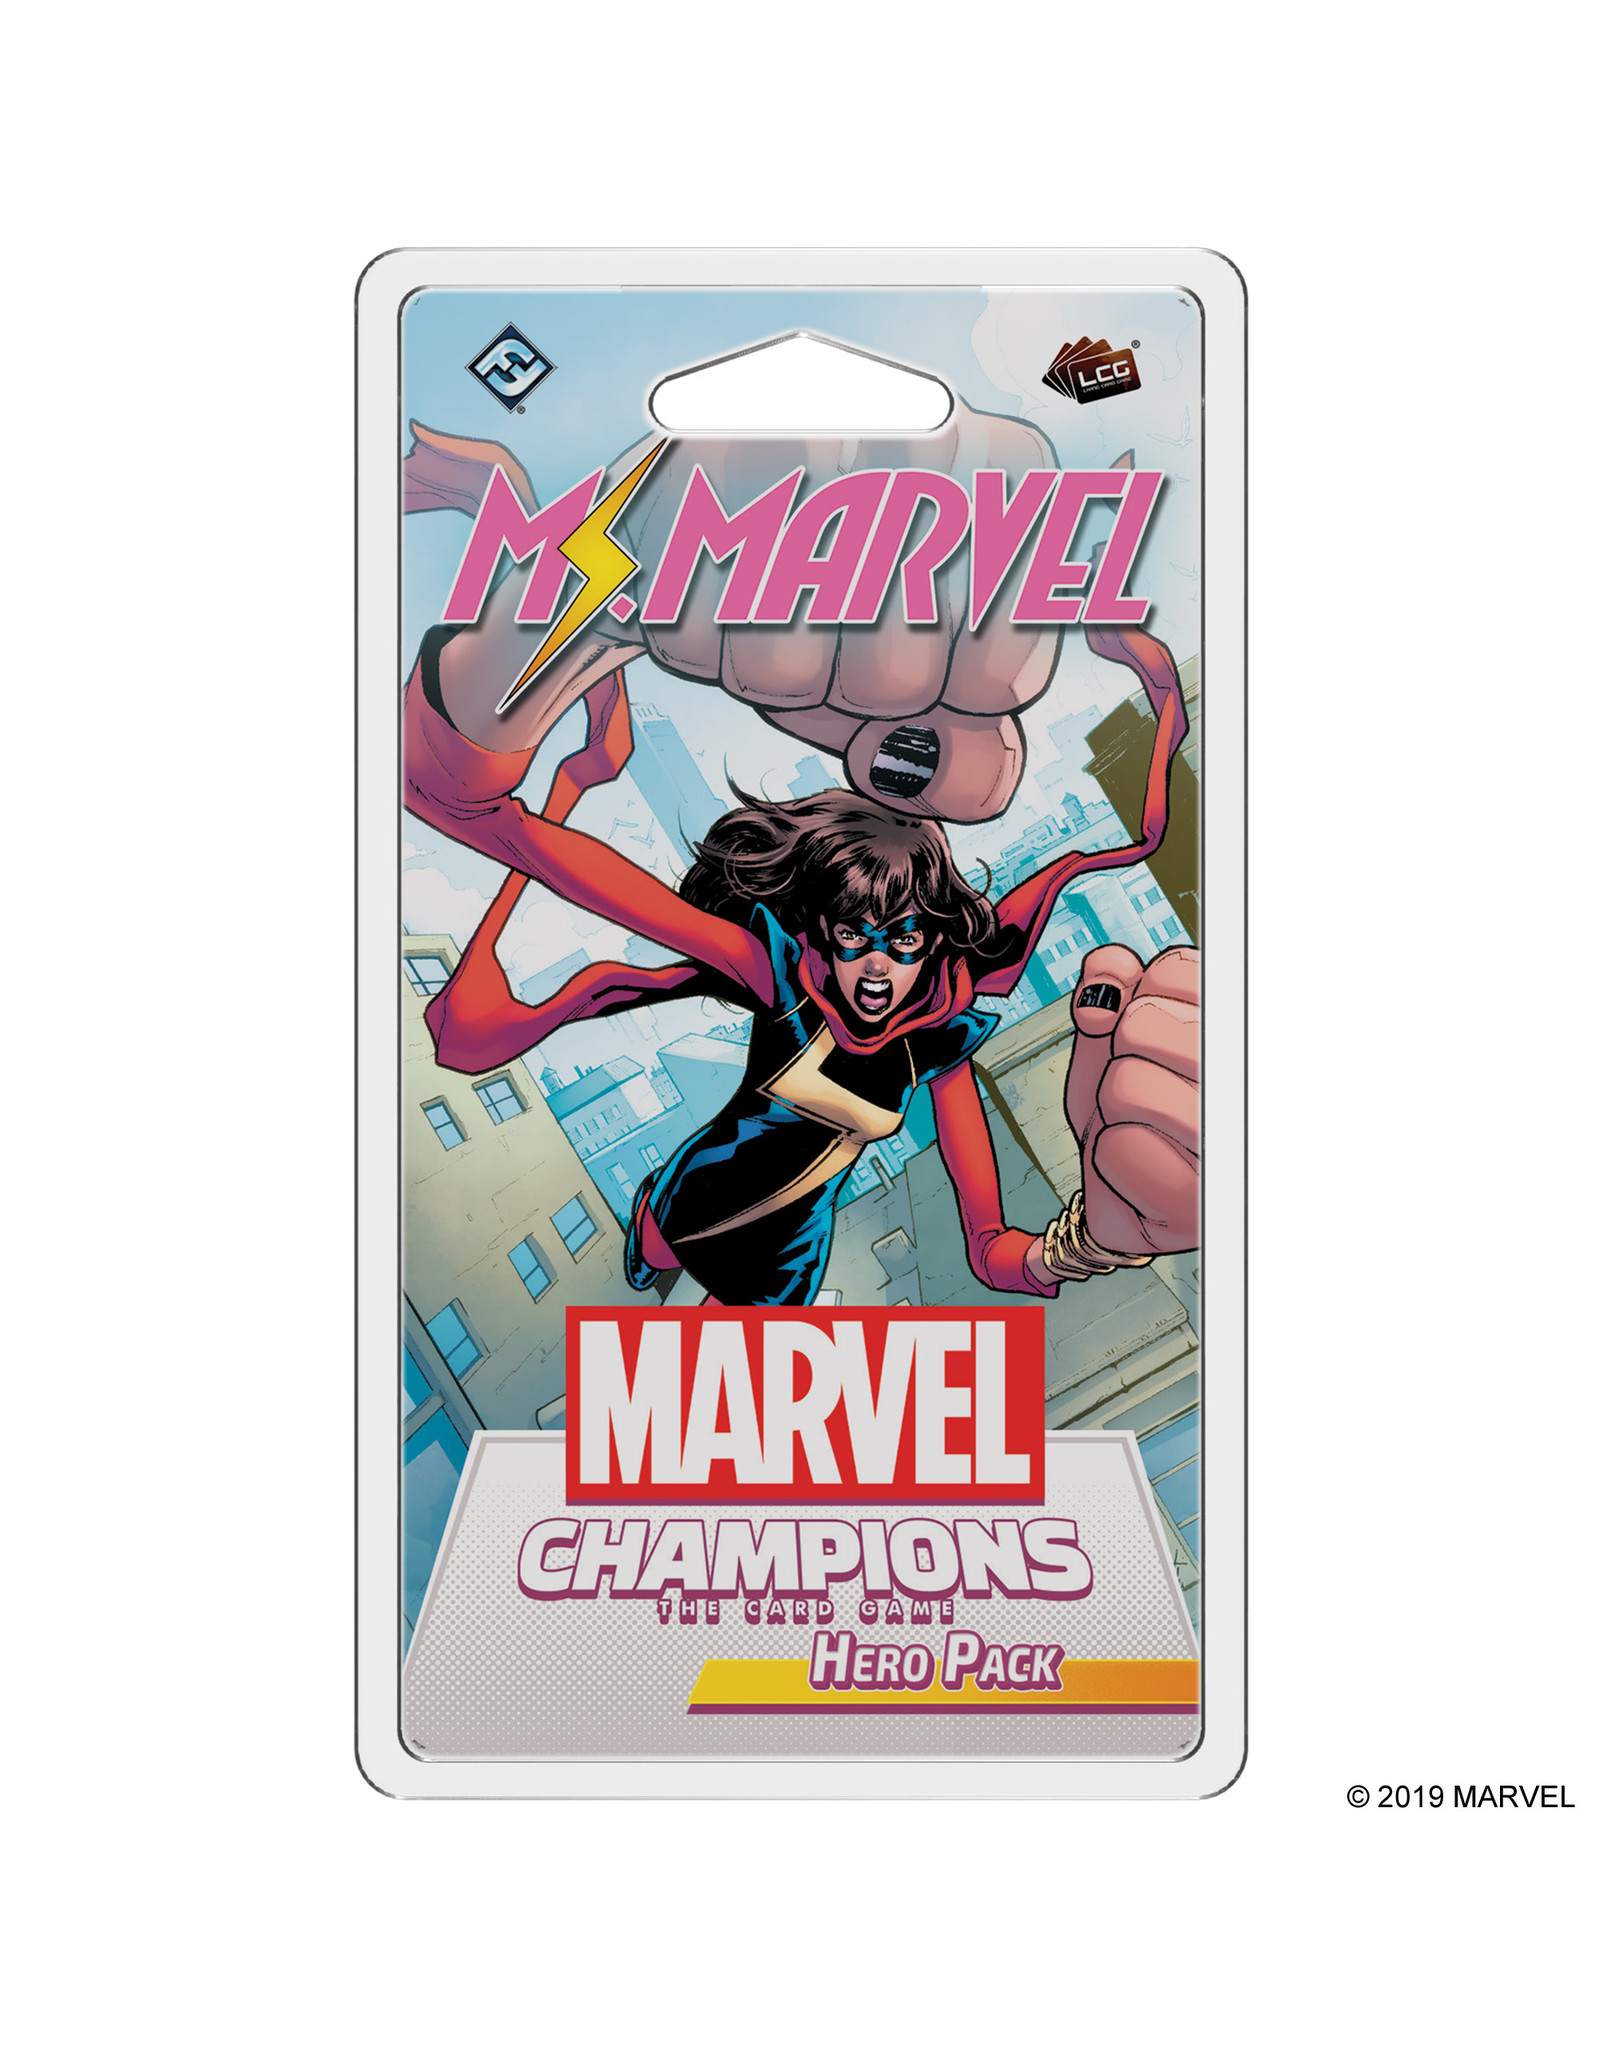 FANTASY FLIGHT MARVEL CHAMPIONS LE JEU DE CARTES: MISS MARVEL